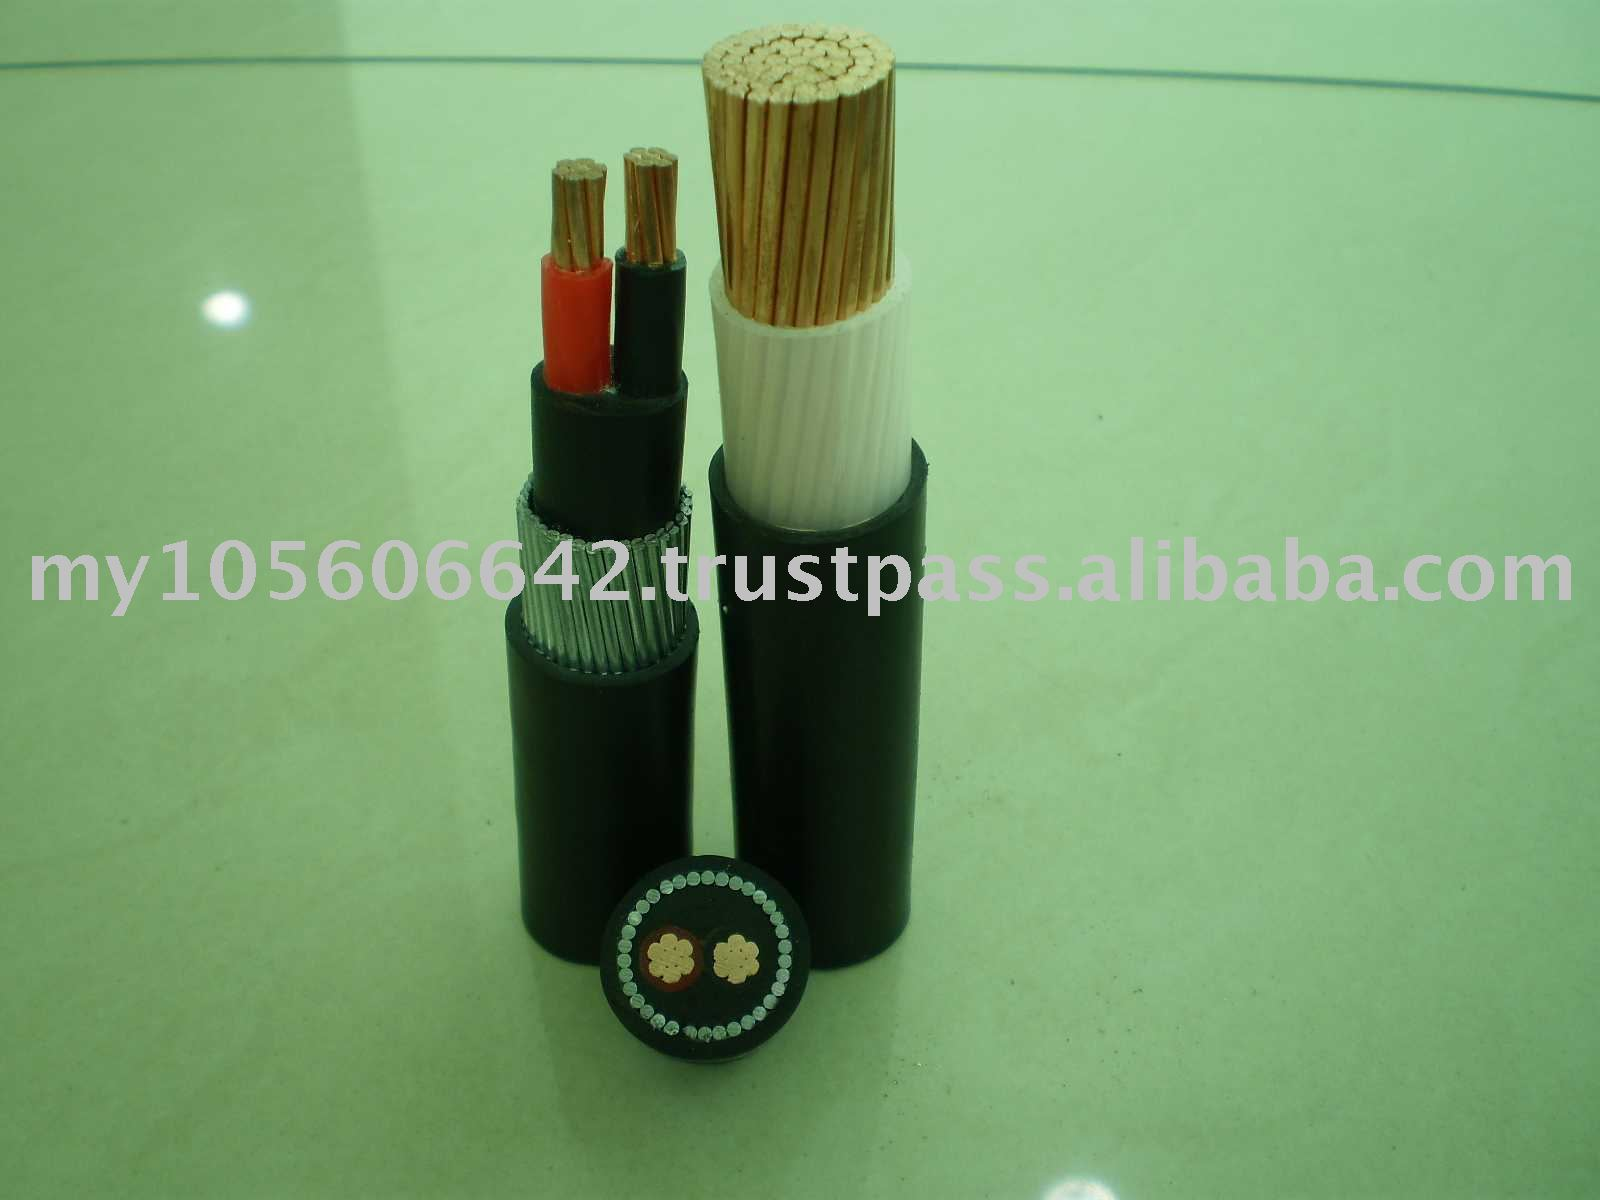 Wire Size For Electric Range, Wire Size For Electric Range Suppliers and  Manufacturers at Alibaba.com